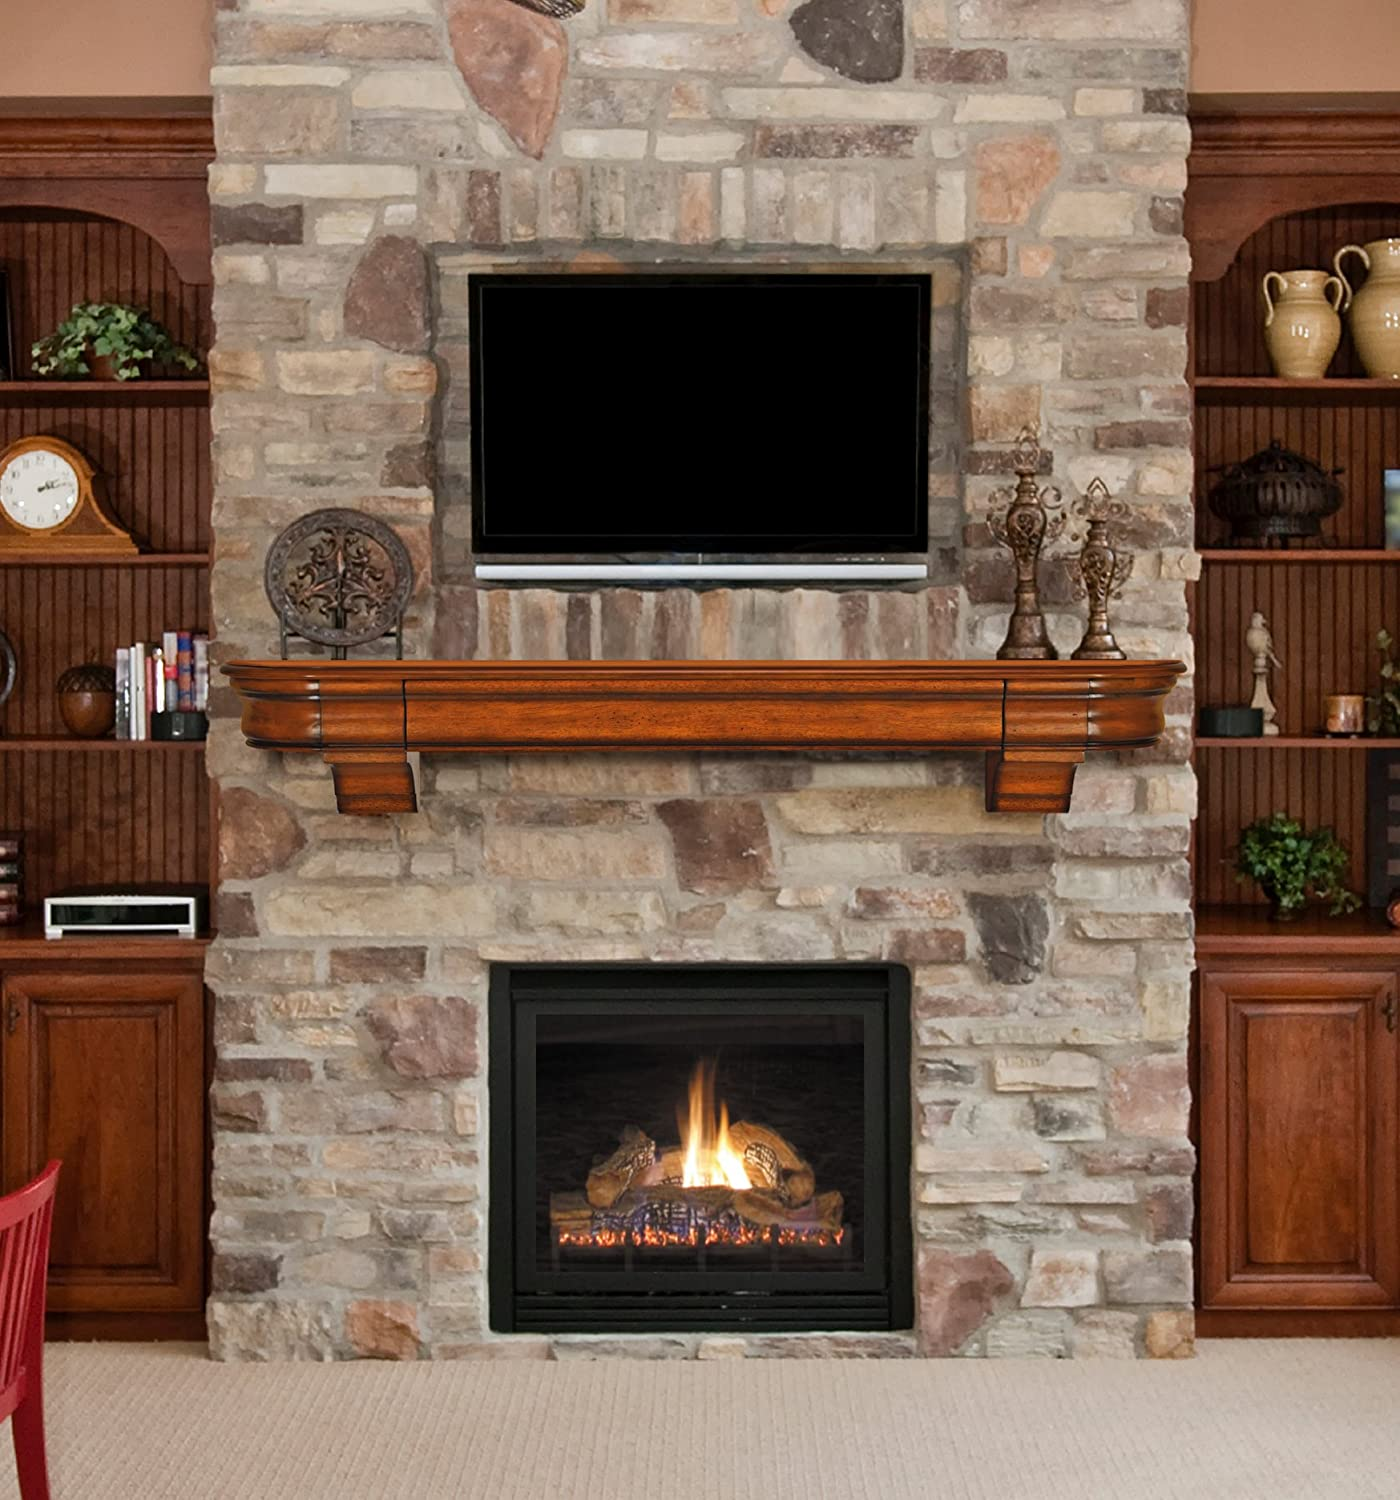 by to style fireplaces hazelmere share where quality charm world fireplace country pictures our elegance surrounds mantel mantels crafters wooden ambiance and grace master we of are welcome